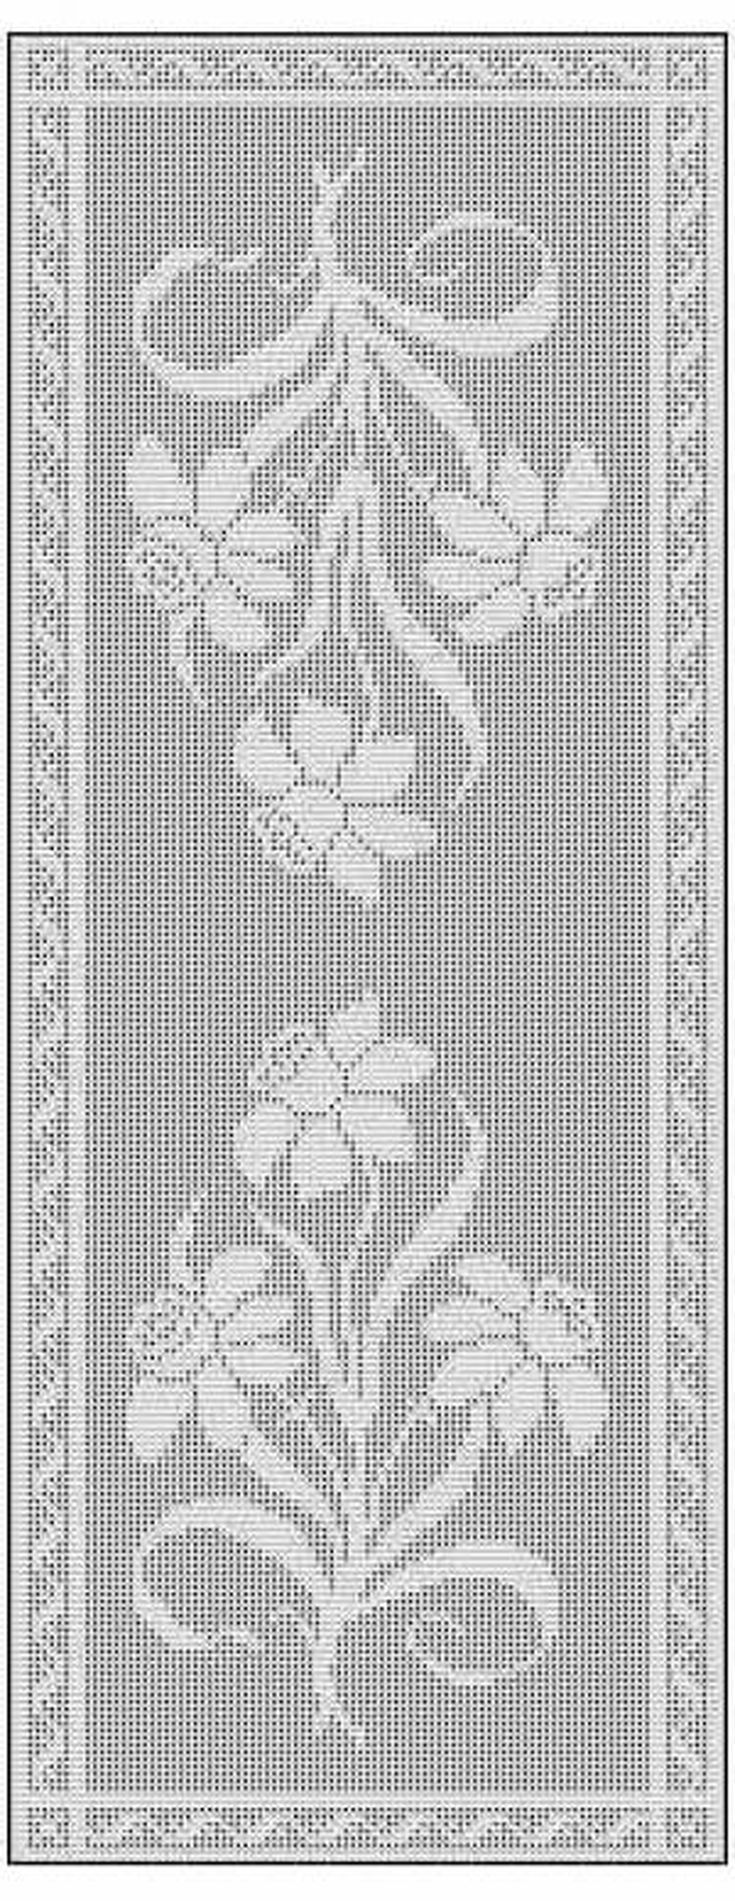 Filet crochet table runner free chart pattern crochet table filet crochet table runner free chart pattern bankloansurffo Images